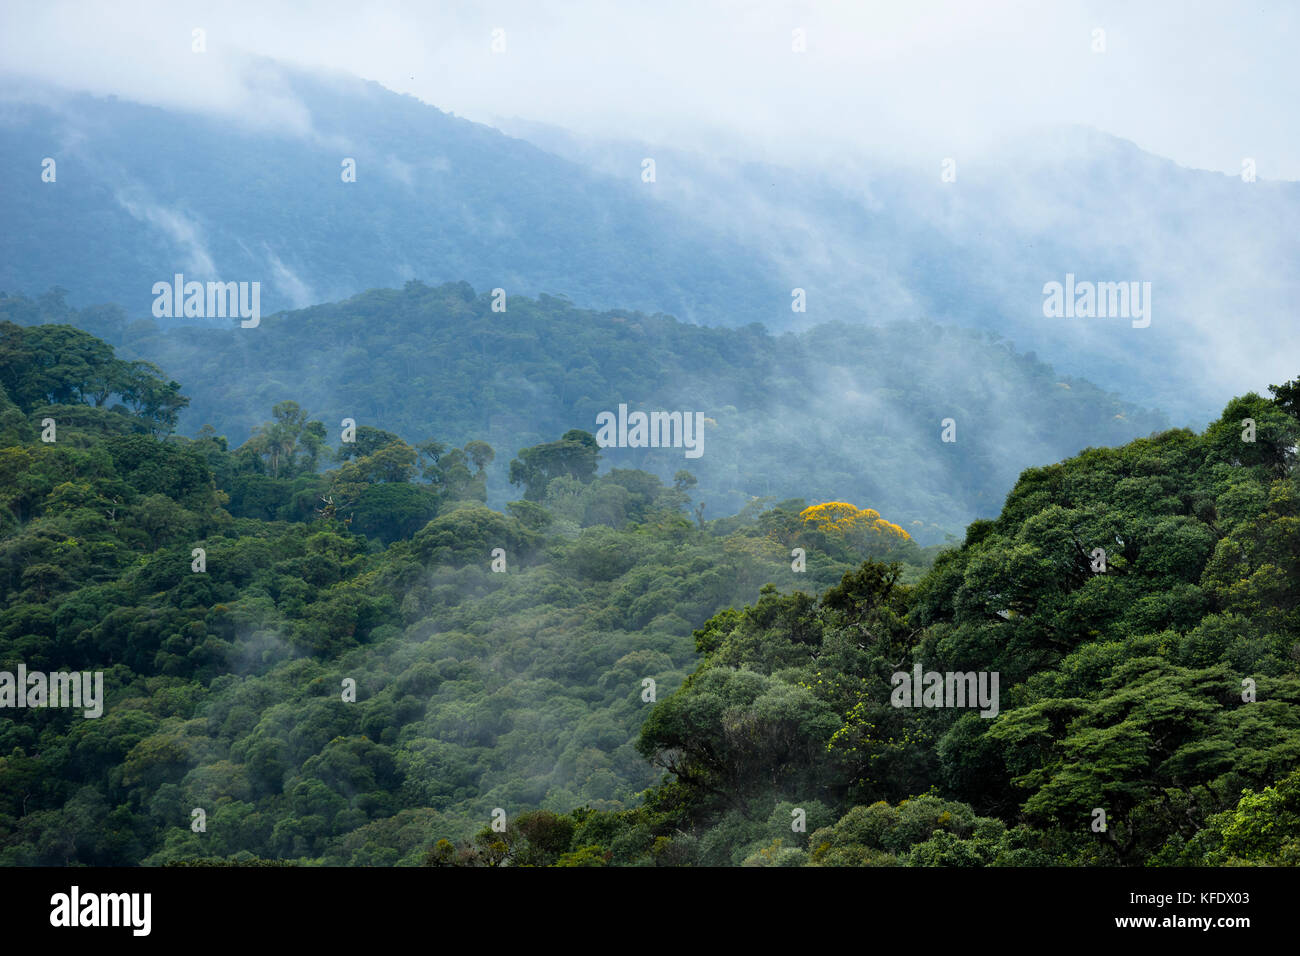 Primary Atlantic Rainforest from Serra de Paranapiacaba, SE Brazil - Stock Image